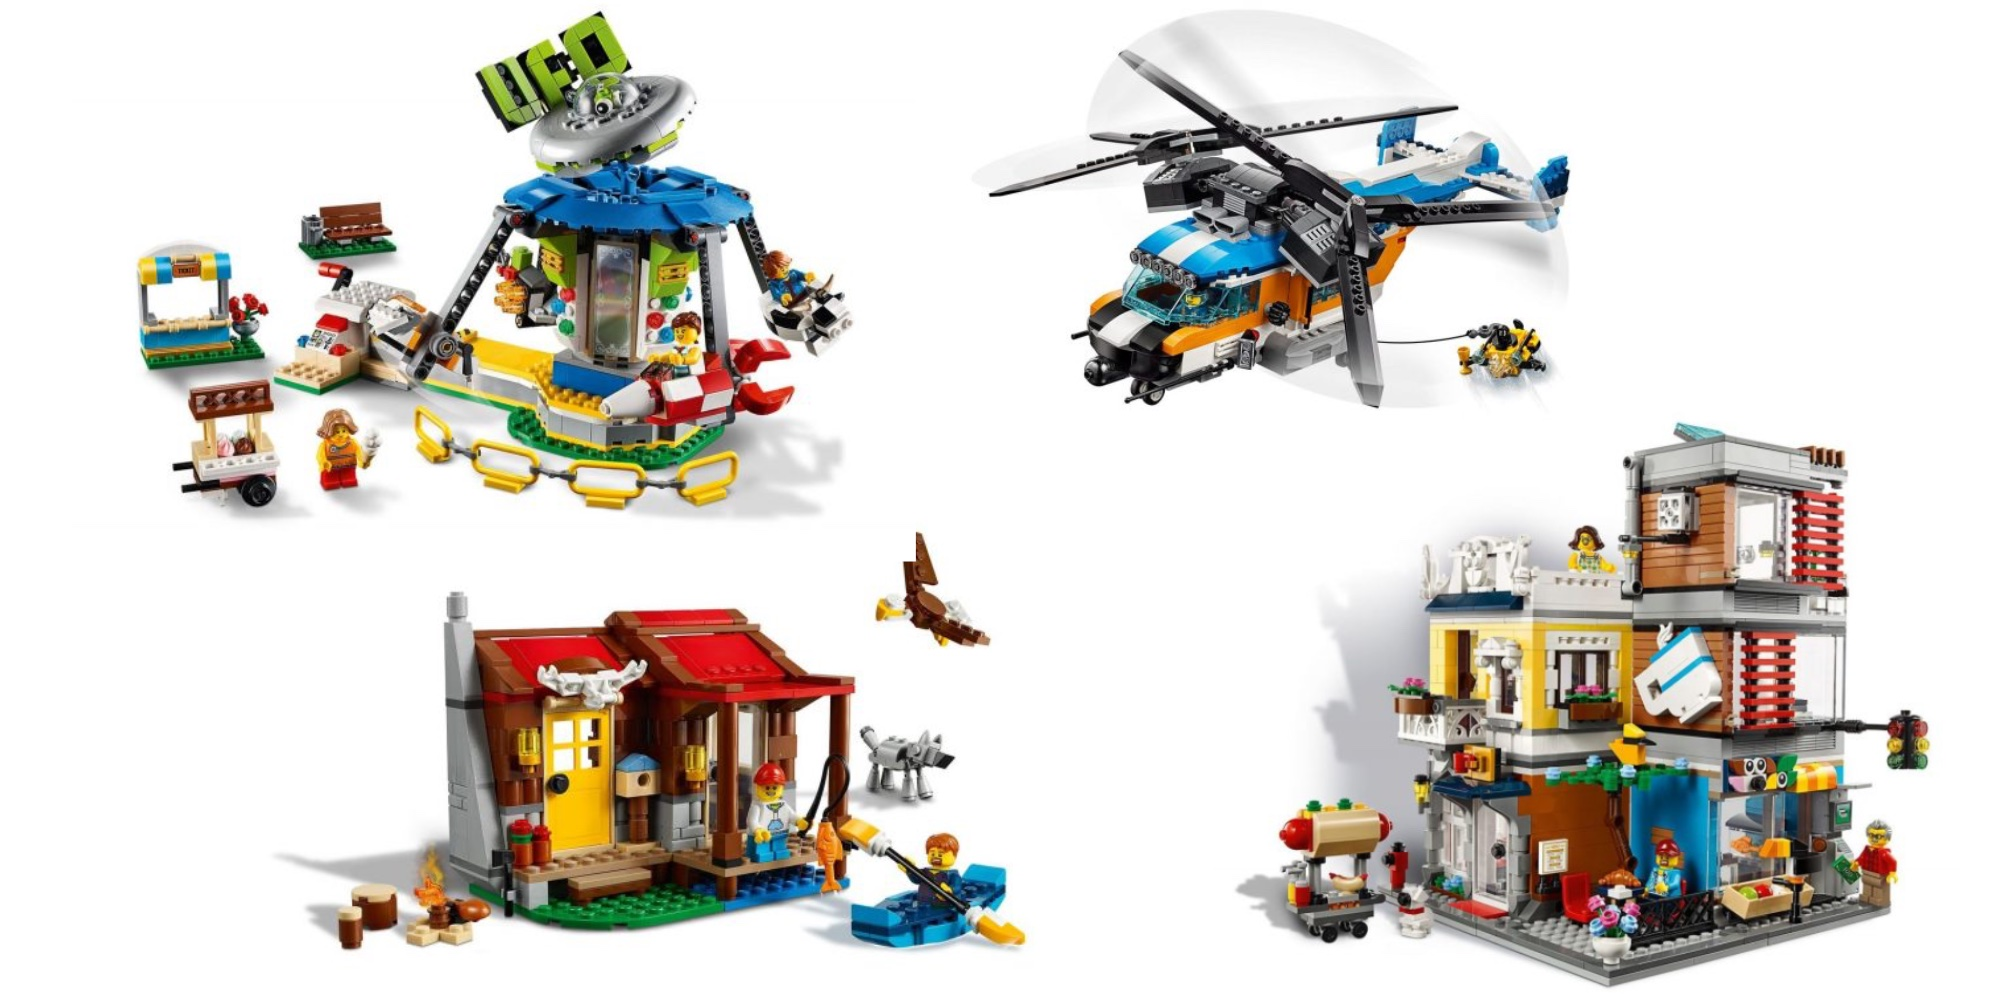 Lego City Space Sets Join New Creator Builds This Summer 9to5toys